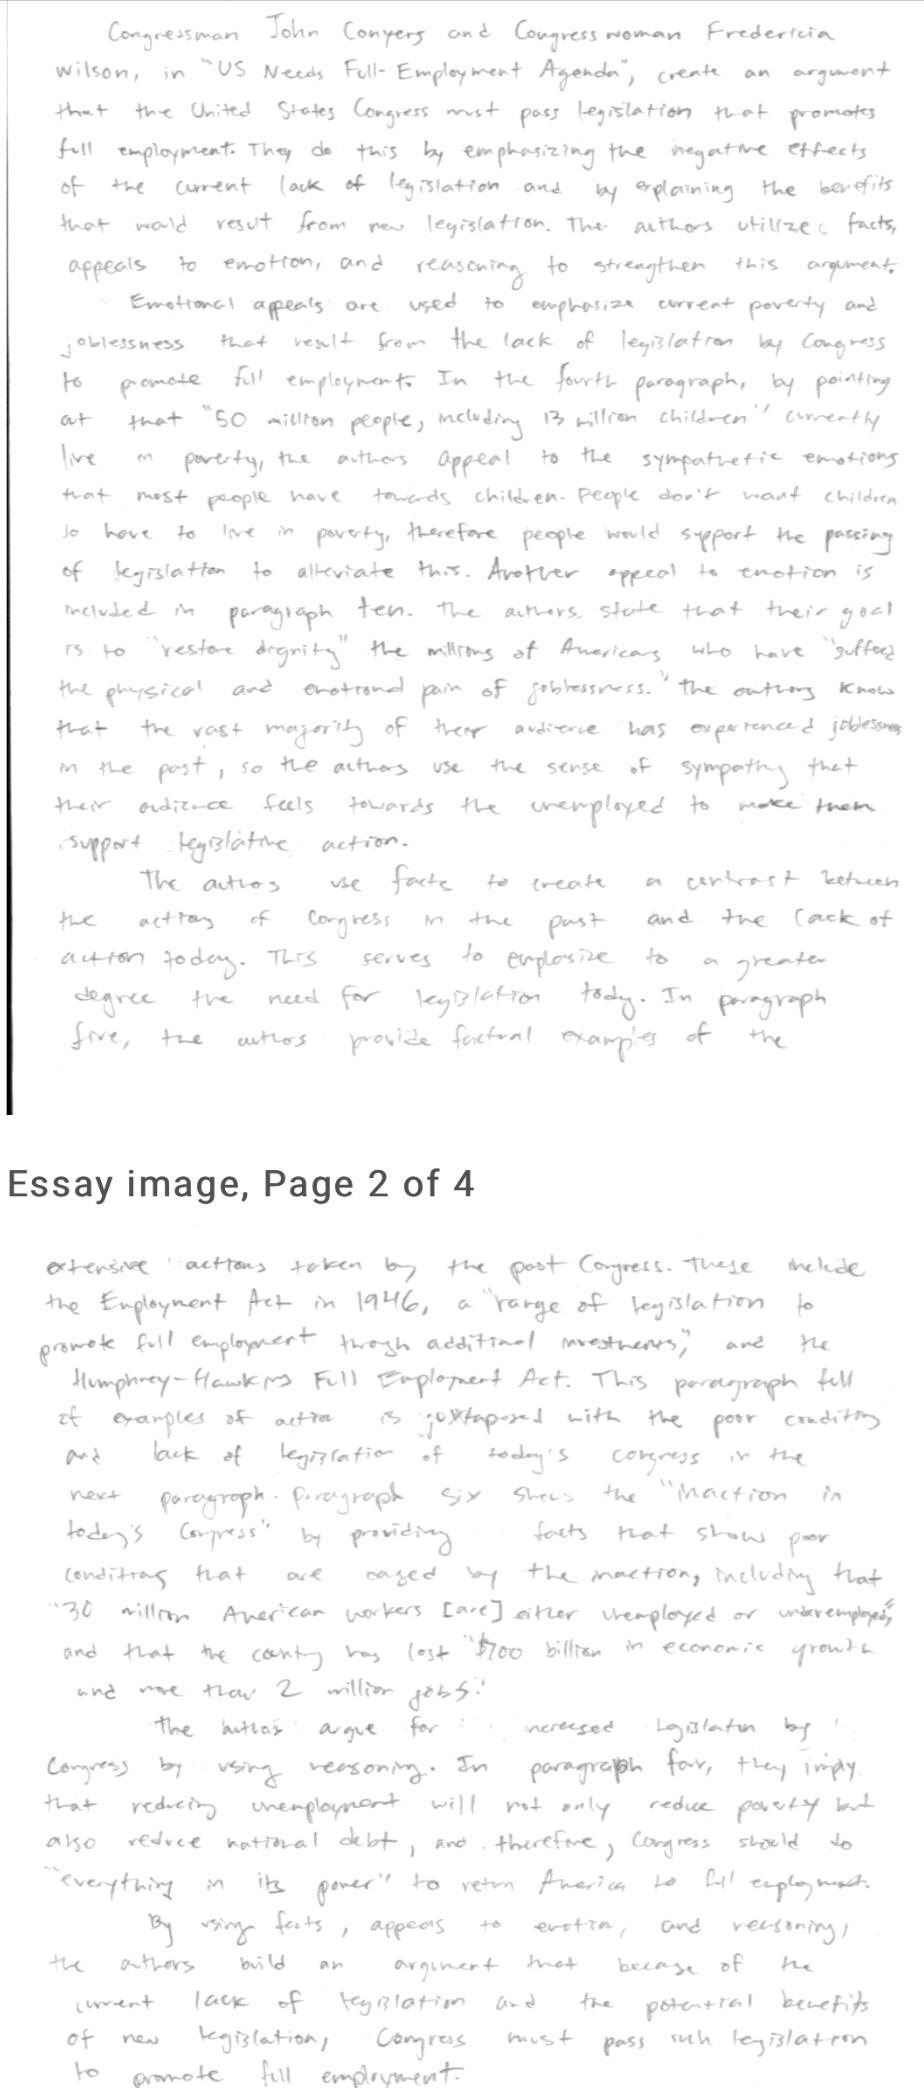 017 Essay Example F1ygbxdvgt411 Sat Fascinating Samples Good Sample 2017 Structure Tips Full